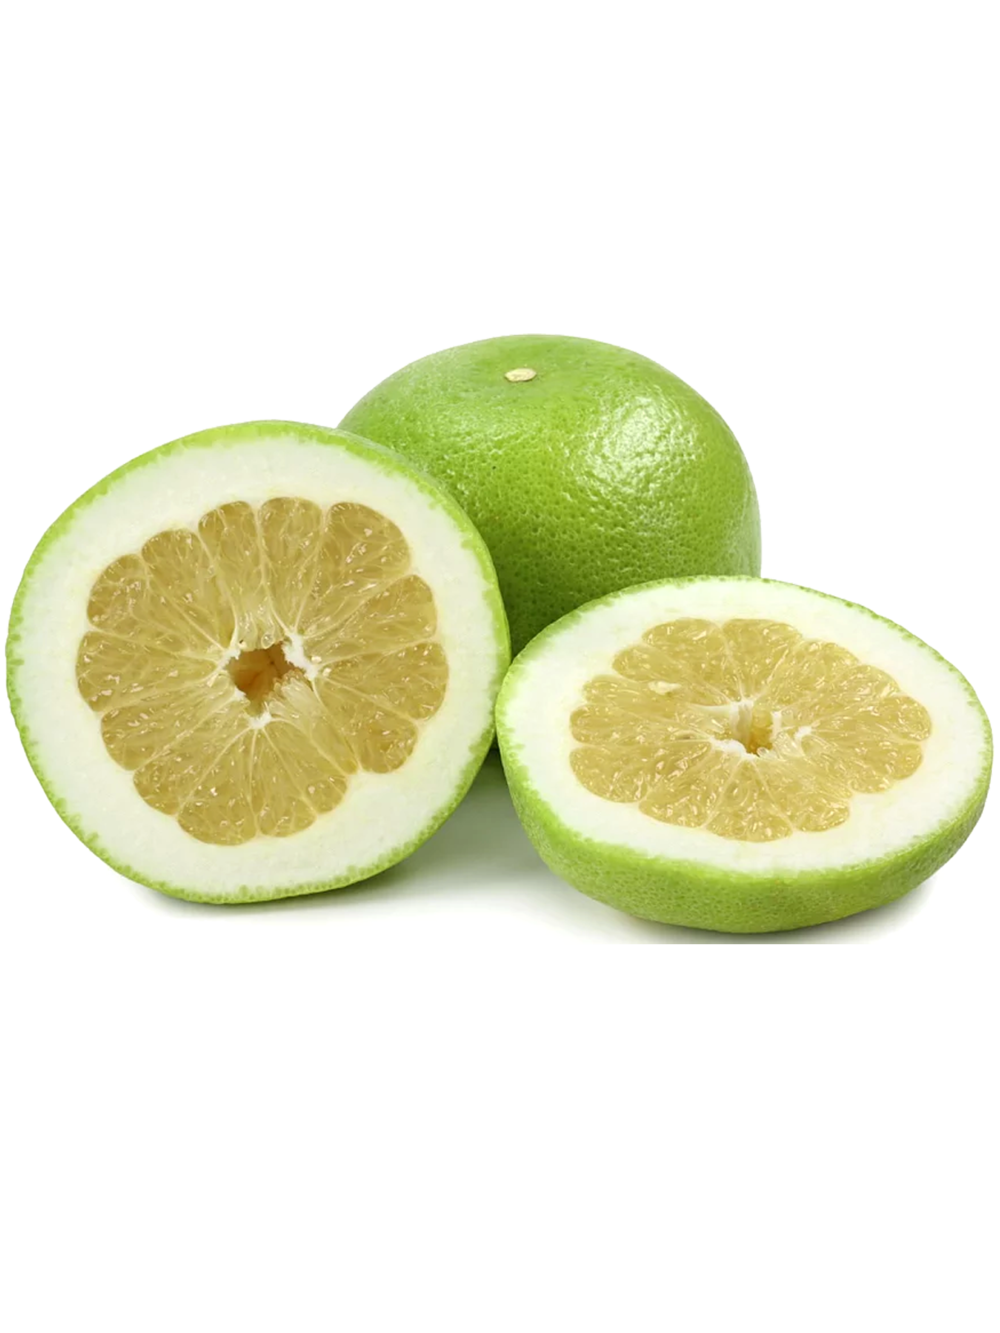 Melogold - Get your vitamin C fix!  This fruit is actually a cross between a pomelo and a grapefruit.  It is similar in flavor to a sweet grapefruit.